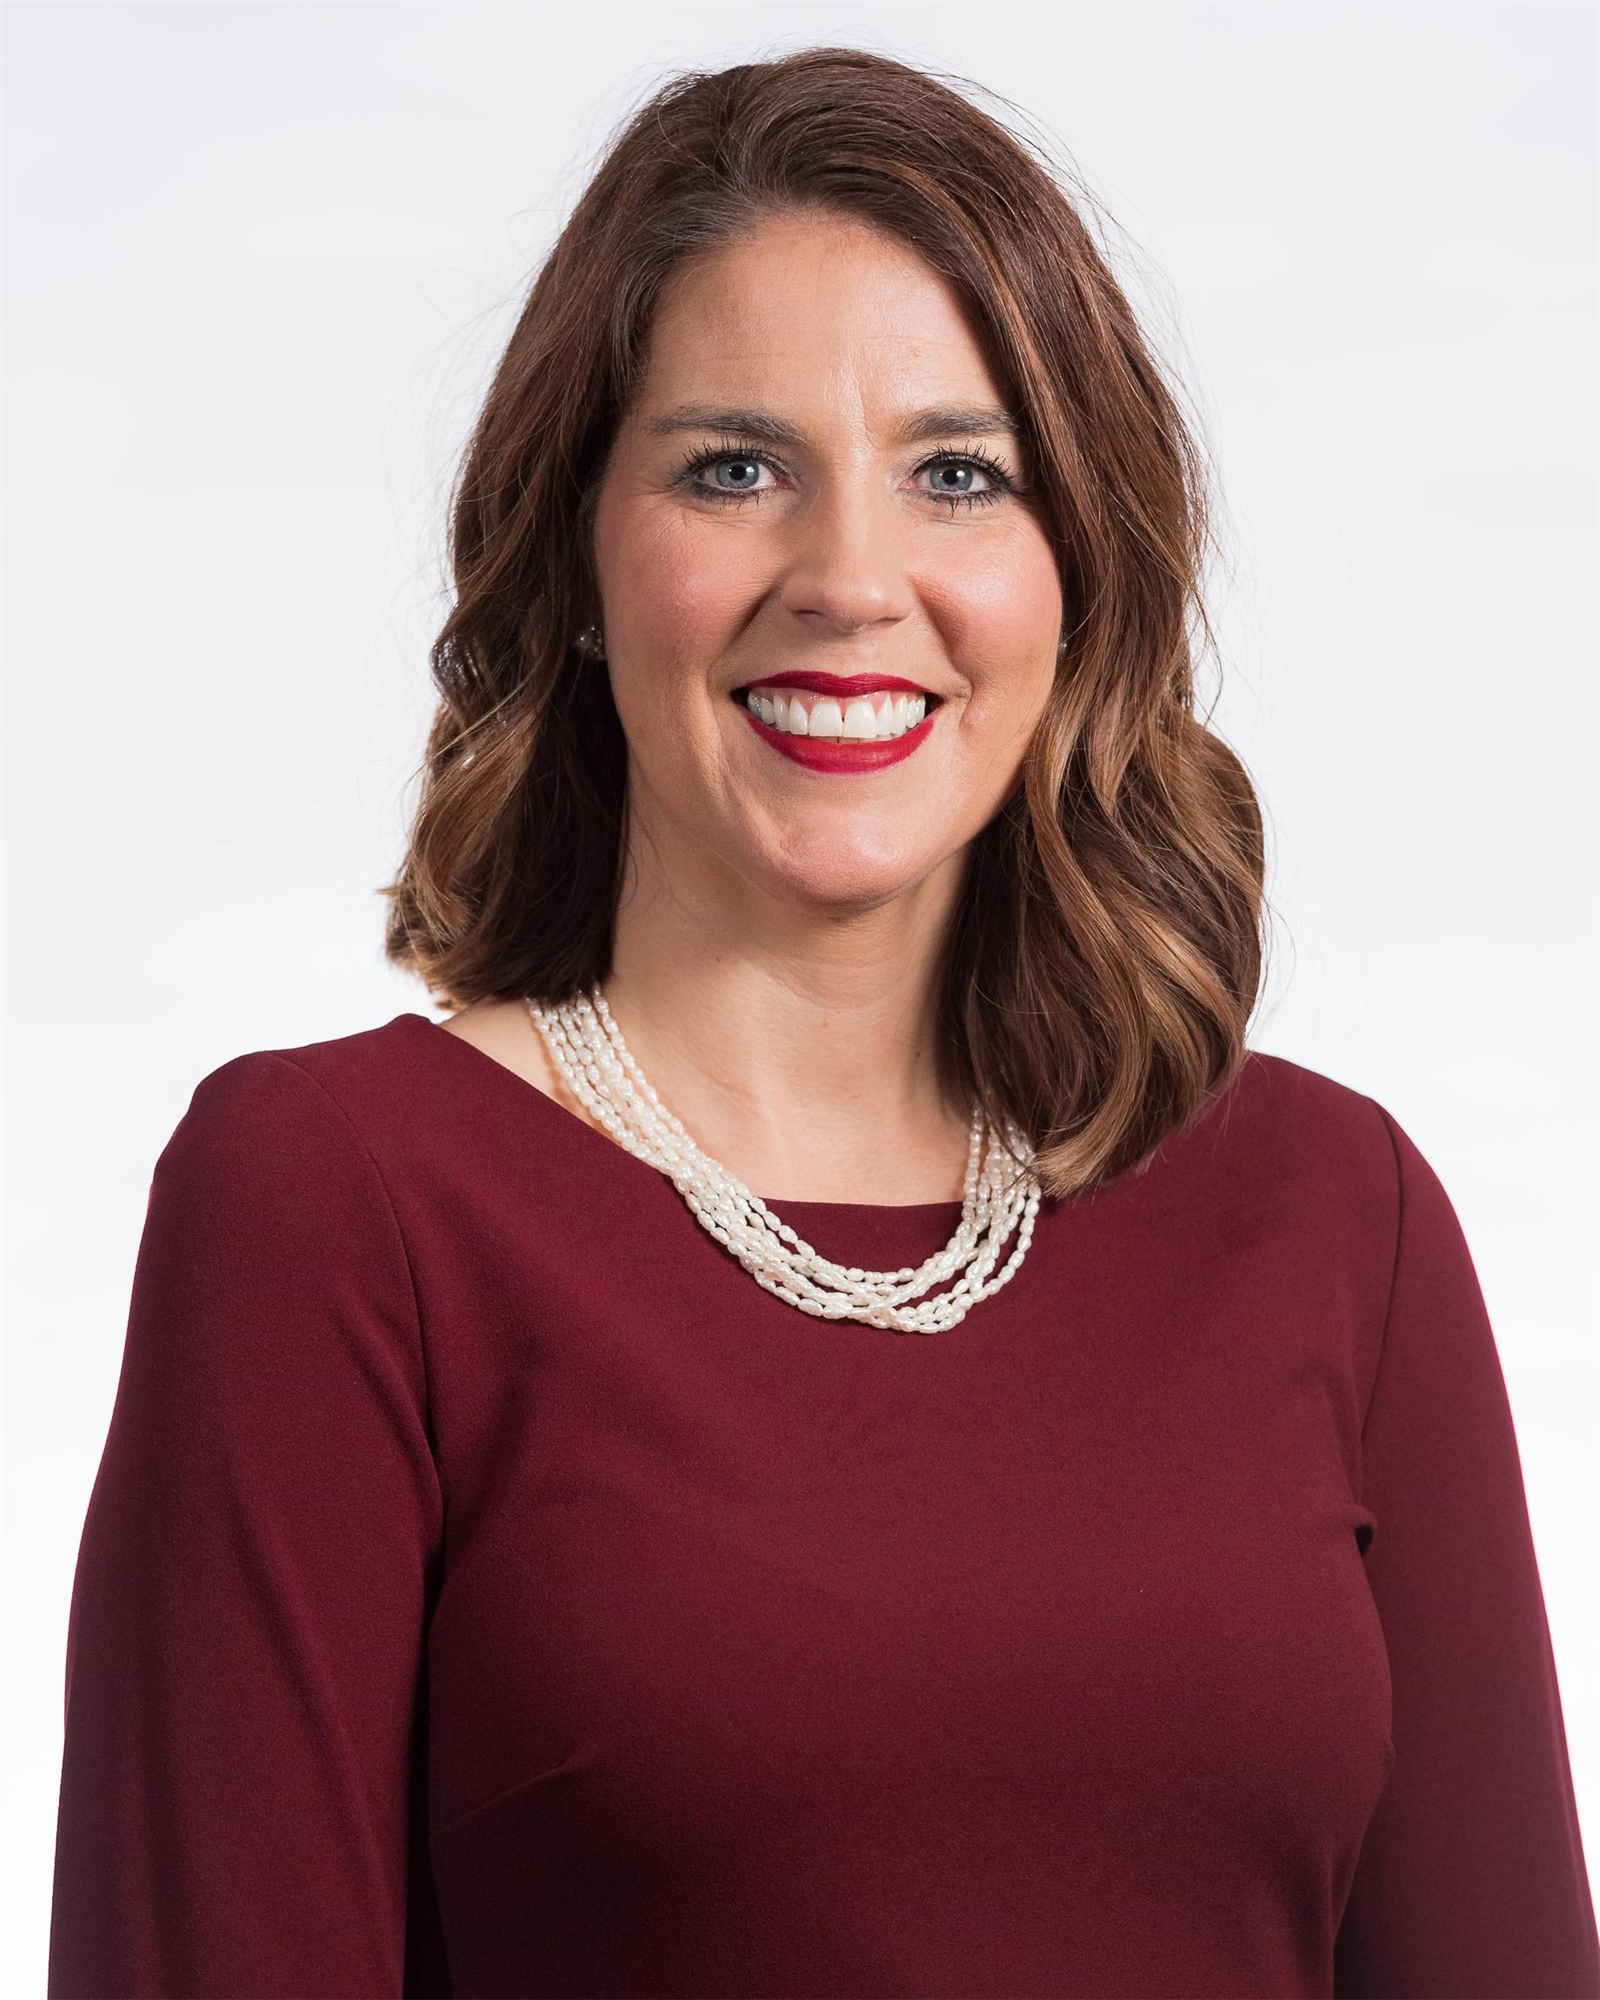 Julie Humbel-Courtney, MS Ed; OCPA President 2021 - 2022; Associate Director for the Honors & Scholars Center, The Ohio State University